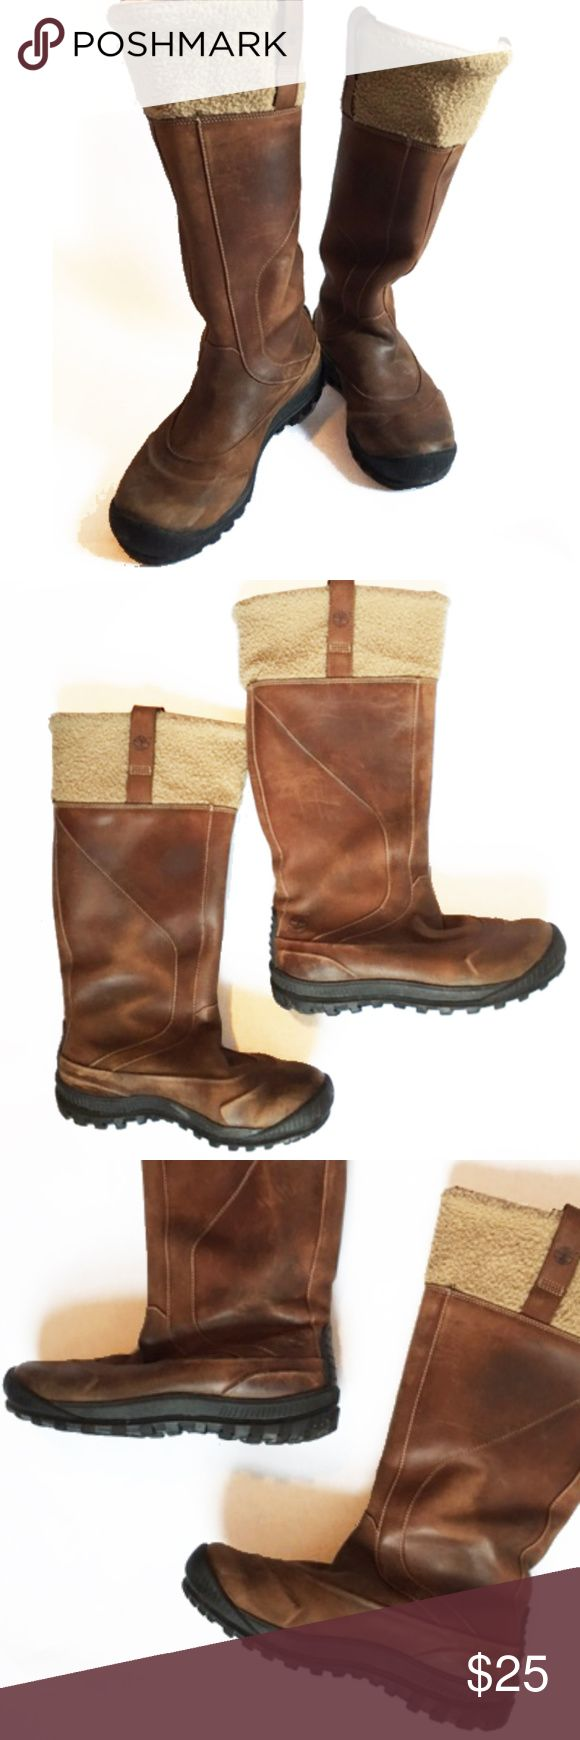 SALE! Timberland Boots - sherpa lining winter boot These Timberland boots will keep you warm! Sherpa lined leather boots with rugged rubber soles. These boots are used in good condition with some signs of wear. Timberland Shoes Winter & Rain Boots